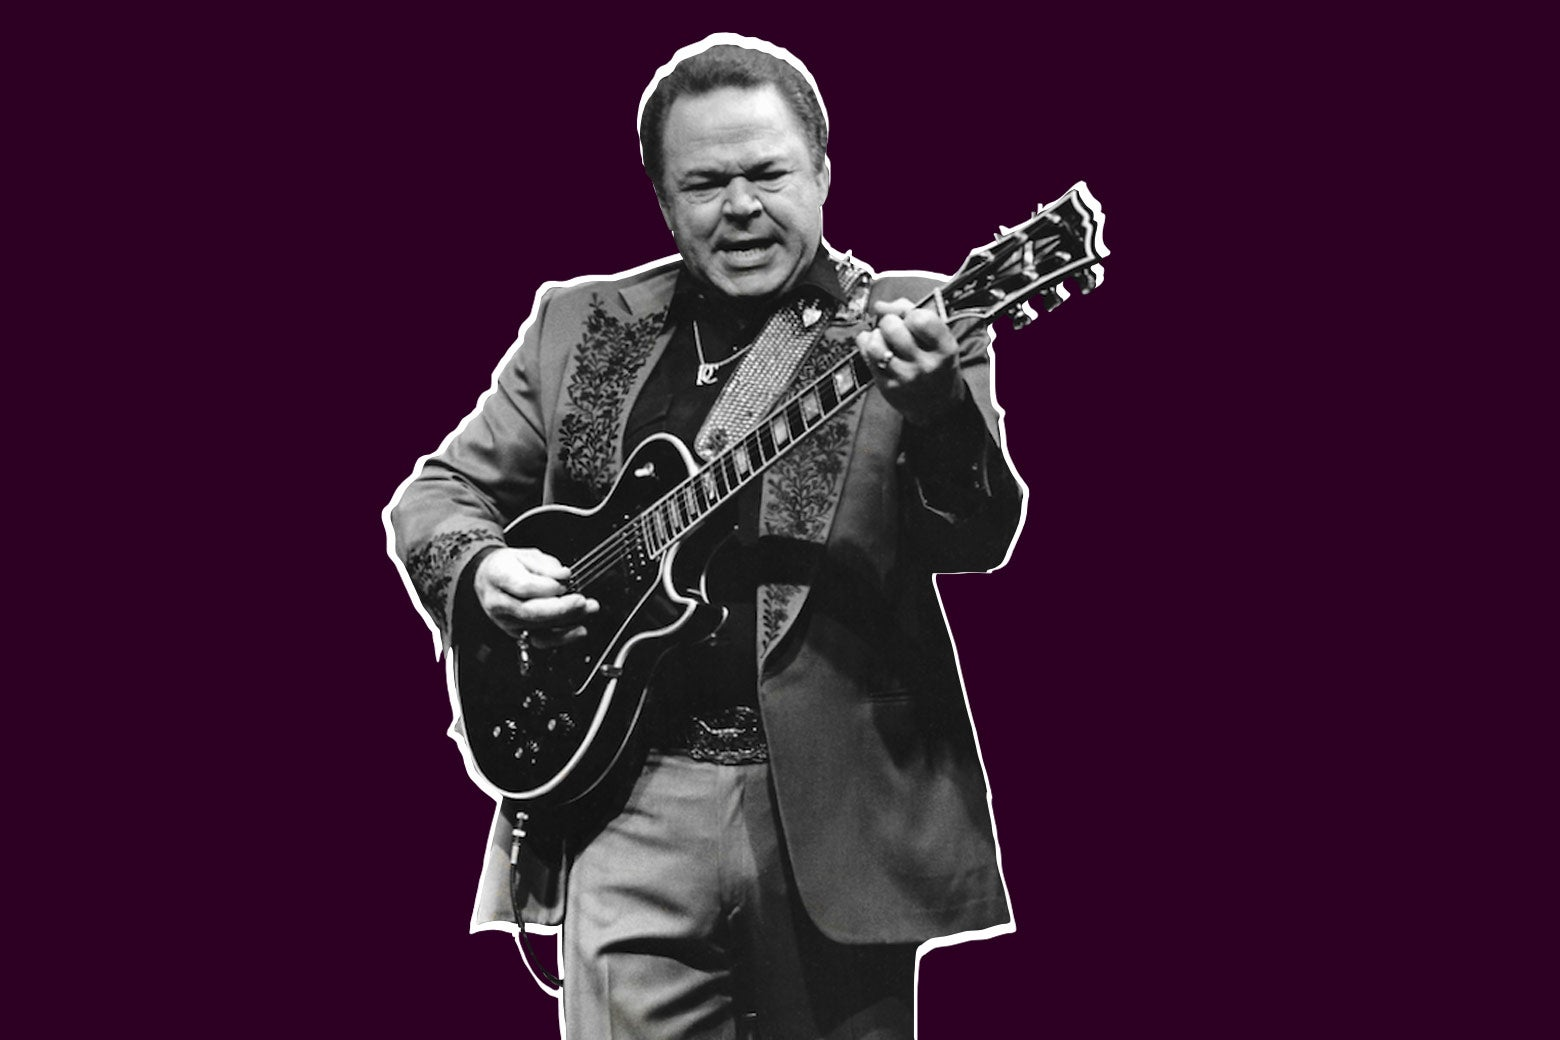 A young Roy Clark strums a guitar.